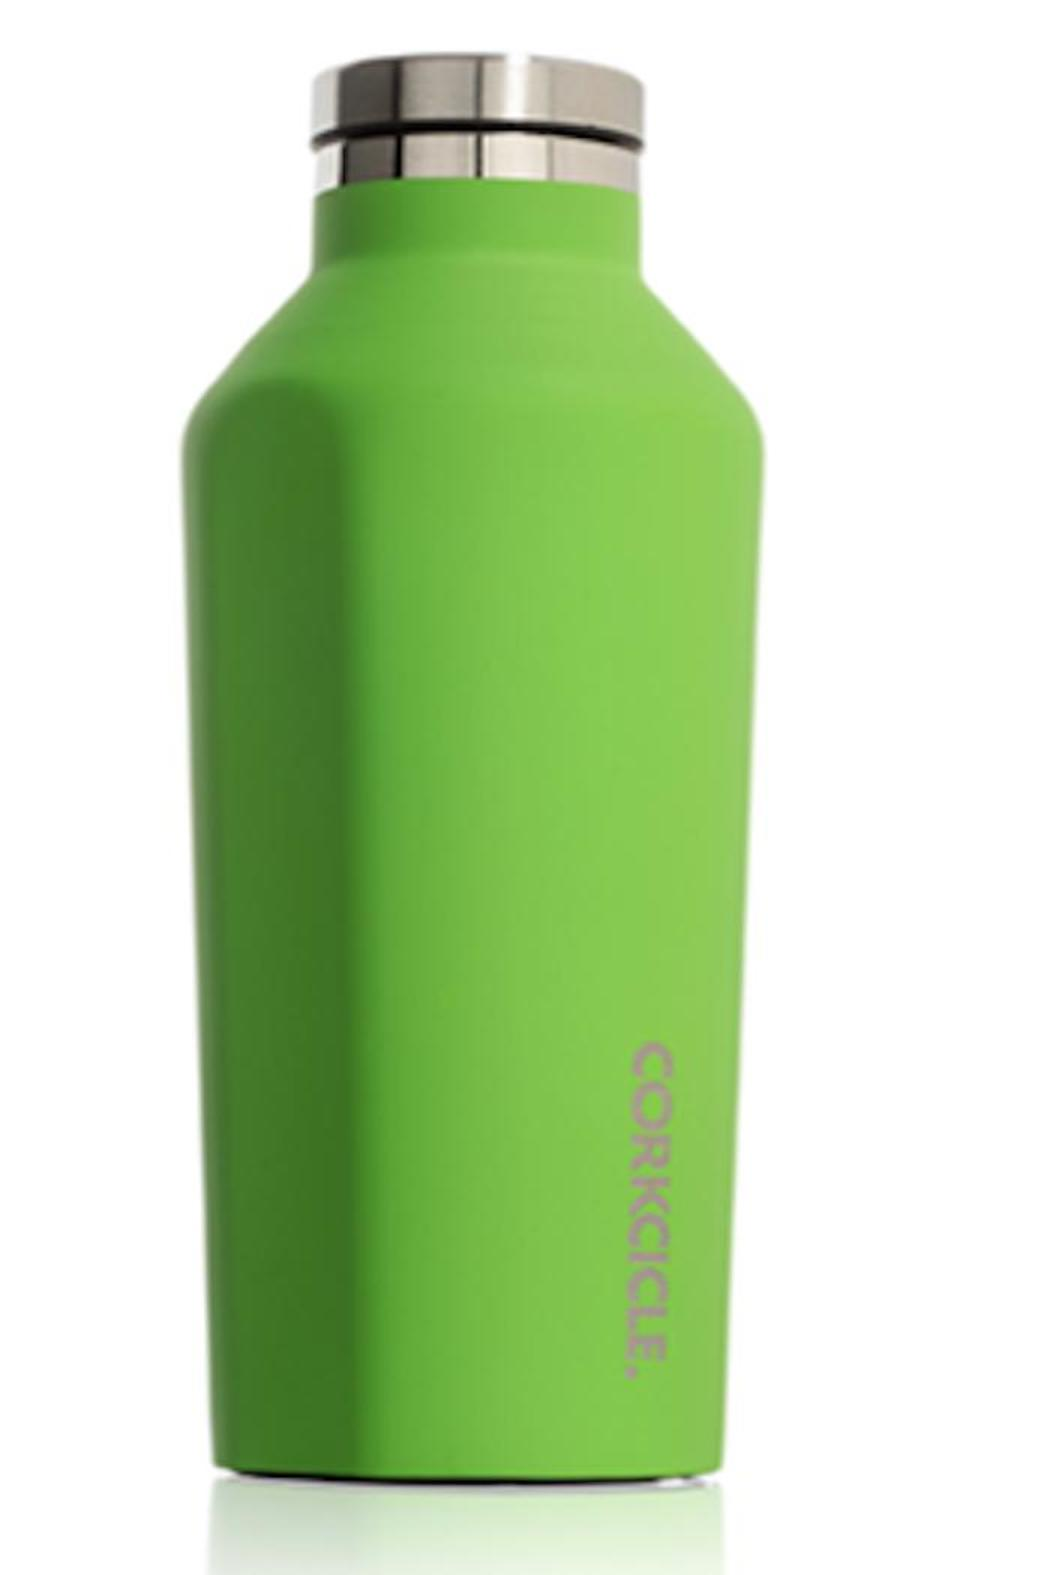 The Corkcicle Vinnebago Is A Wine Canteen That Can: Corkcicle Matte Lime Canteen From Westchester County By